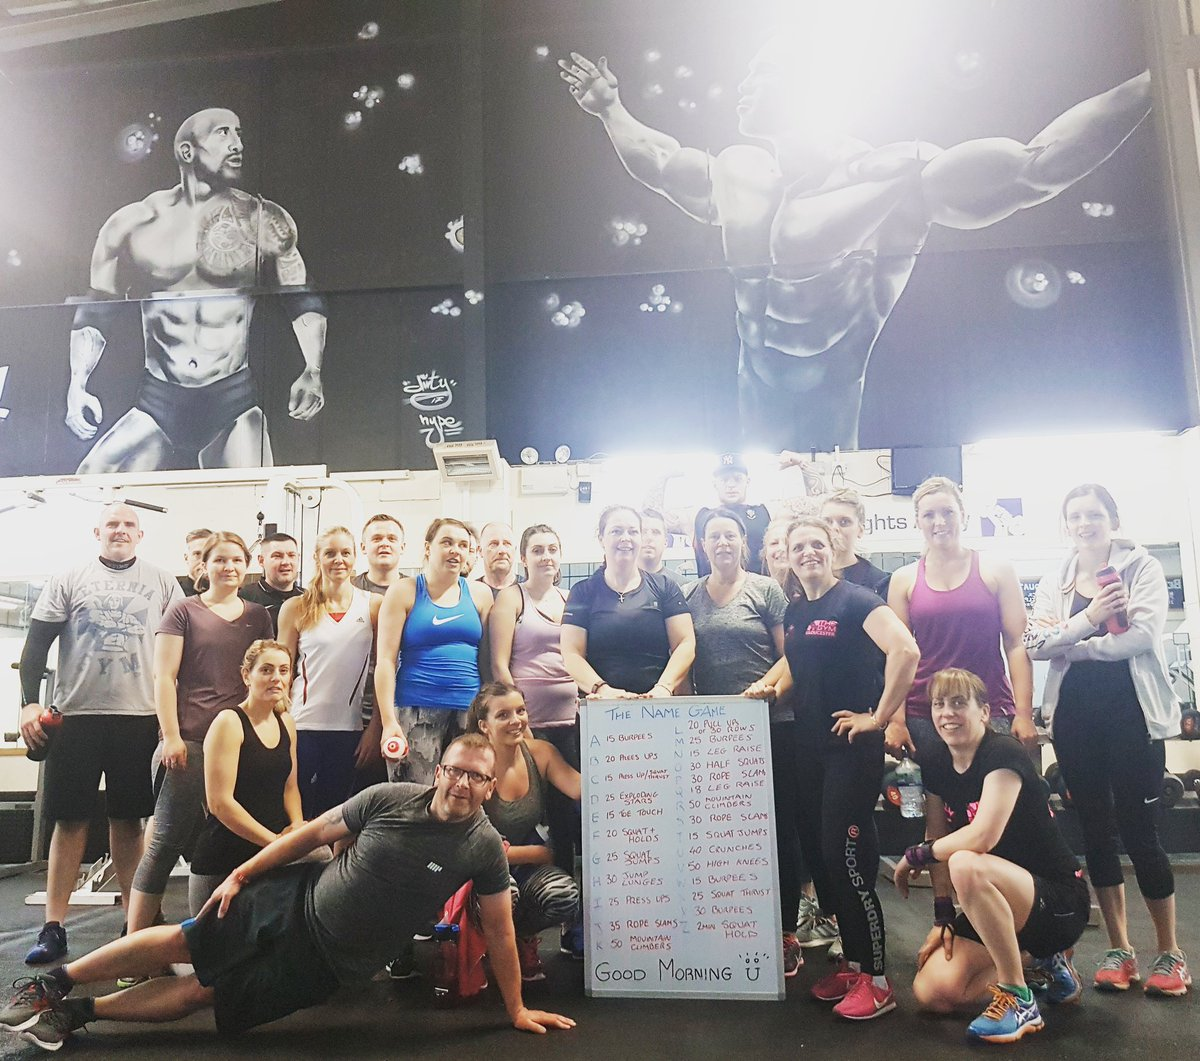 A&amp;J Transformation Bootcamp   #Fitness #Gym #Progression    http://www. thegyminglos.co.uk  &nbsp;  <br>http://pic.twitter.com/ZN0lpo2rif